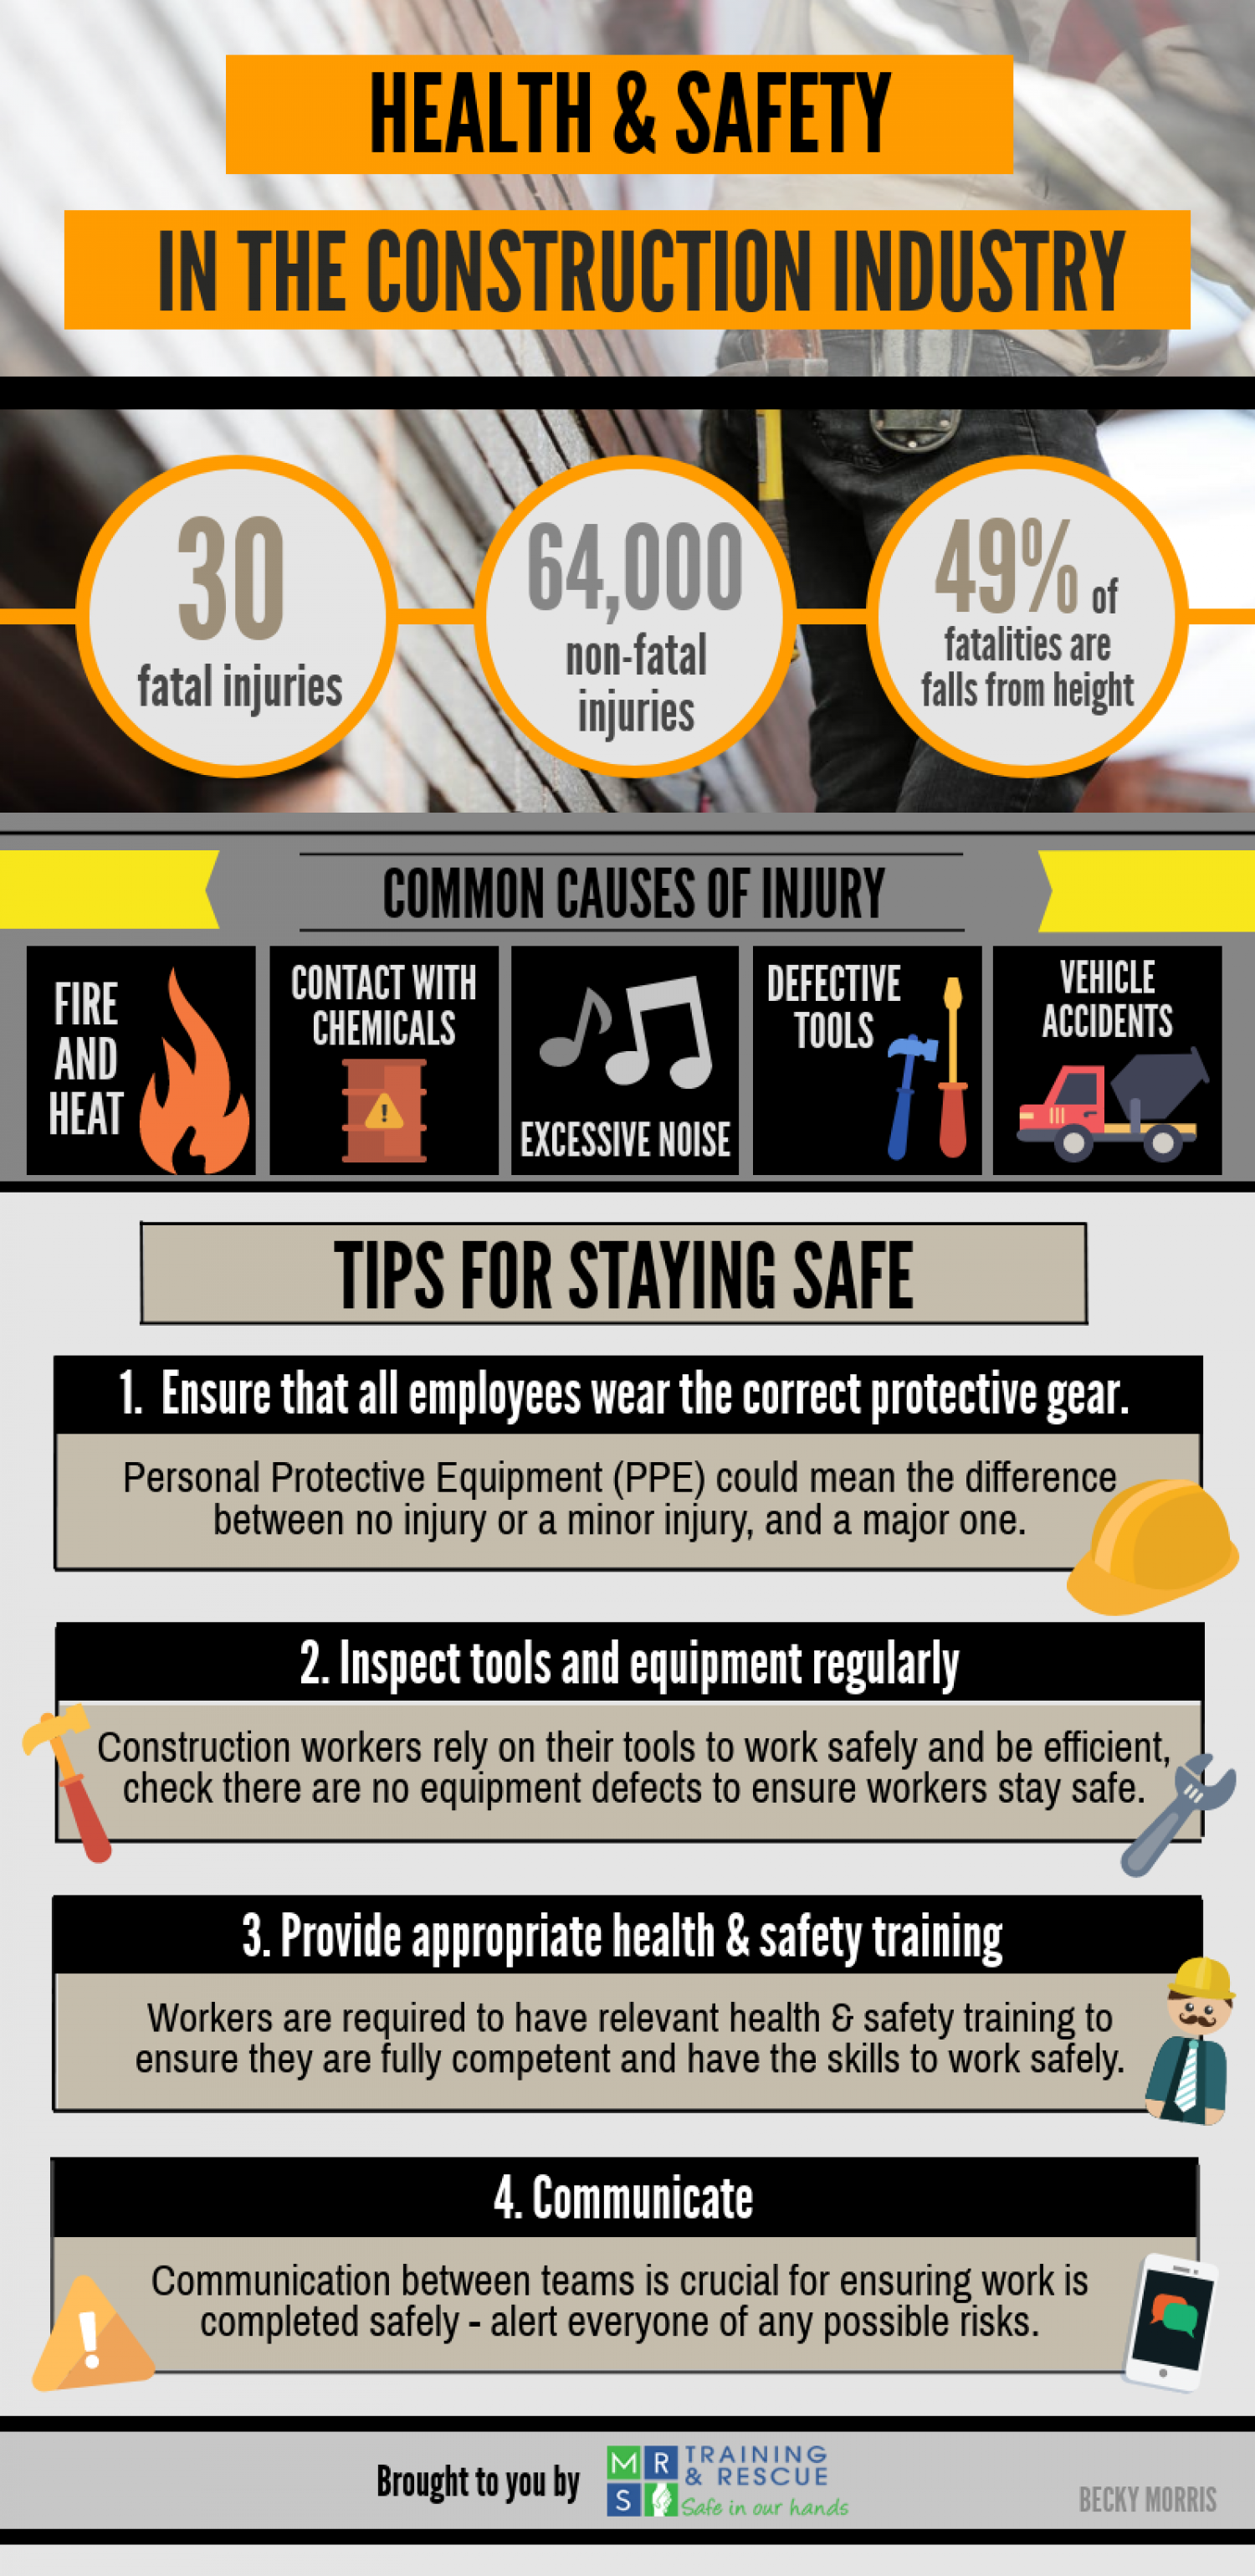 Health & Safety in the Construction Industry Infographic